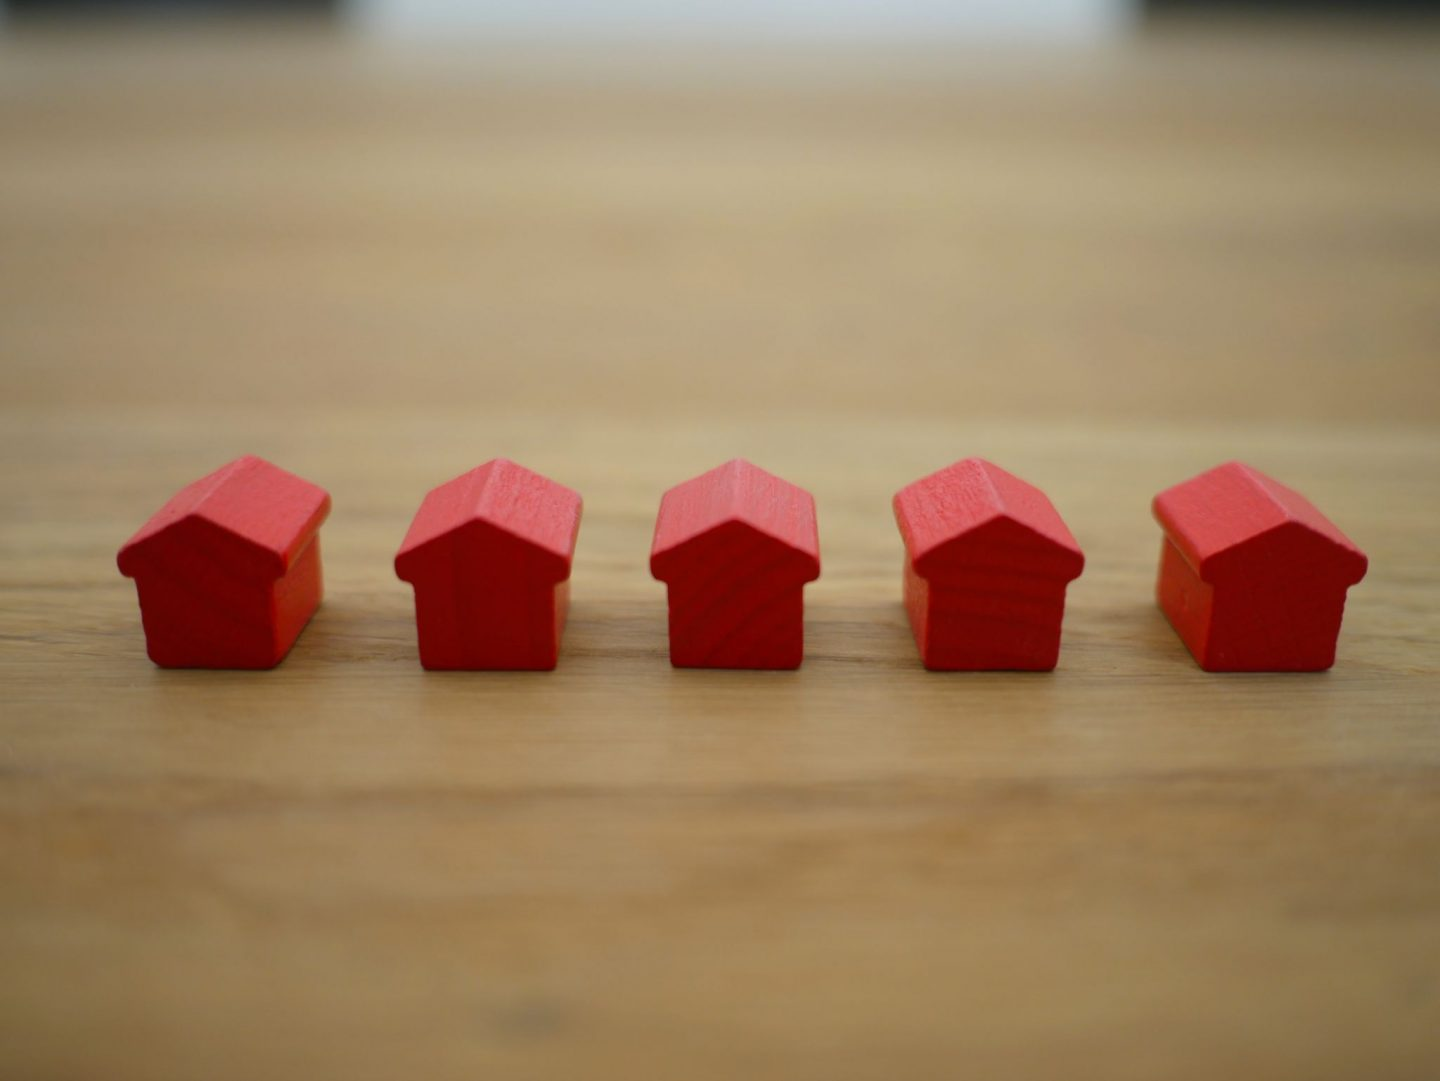 When Is The Right Time To Sell Your Property: Very Important Tips. Red plastic house figurines